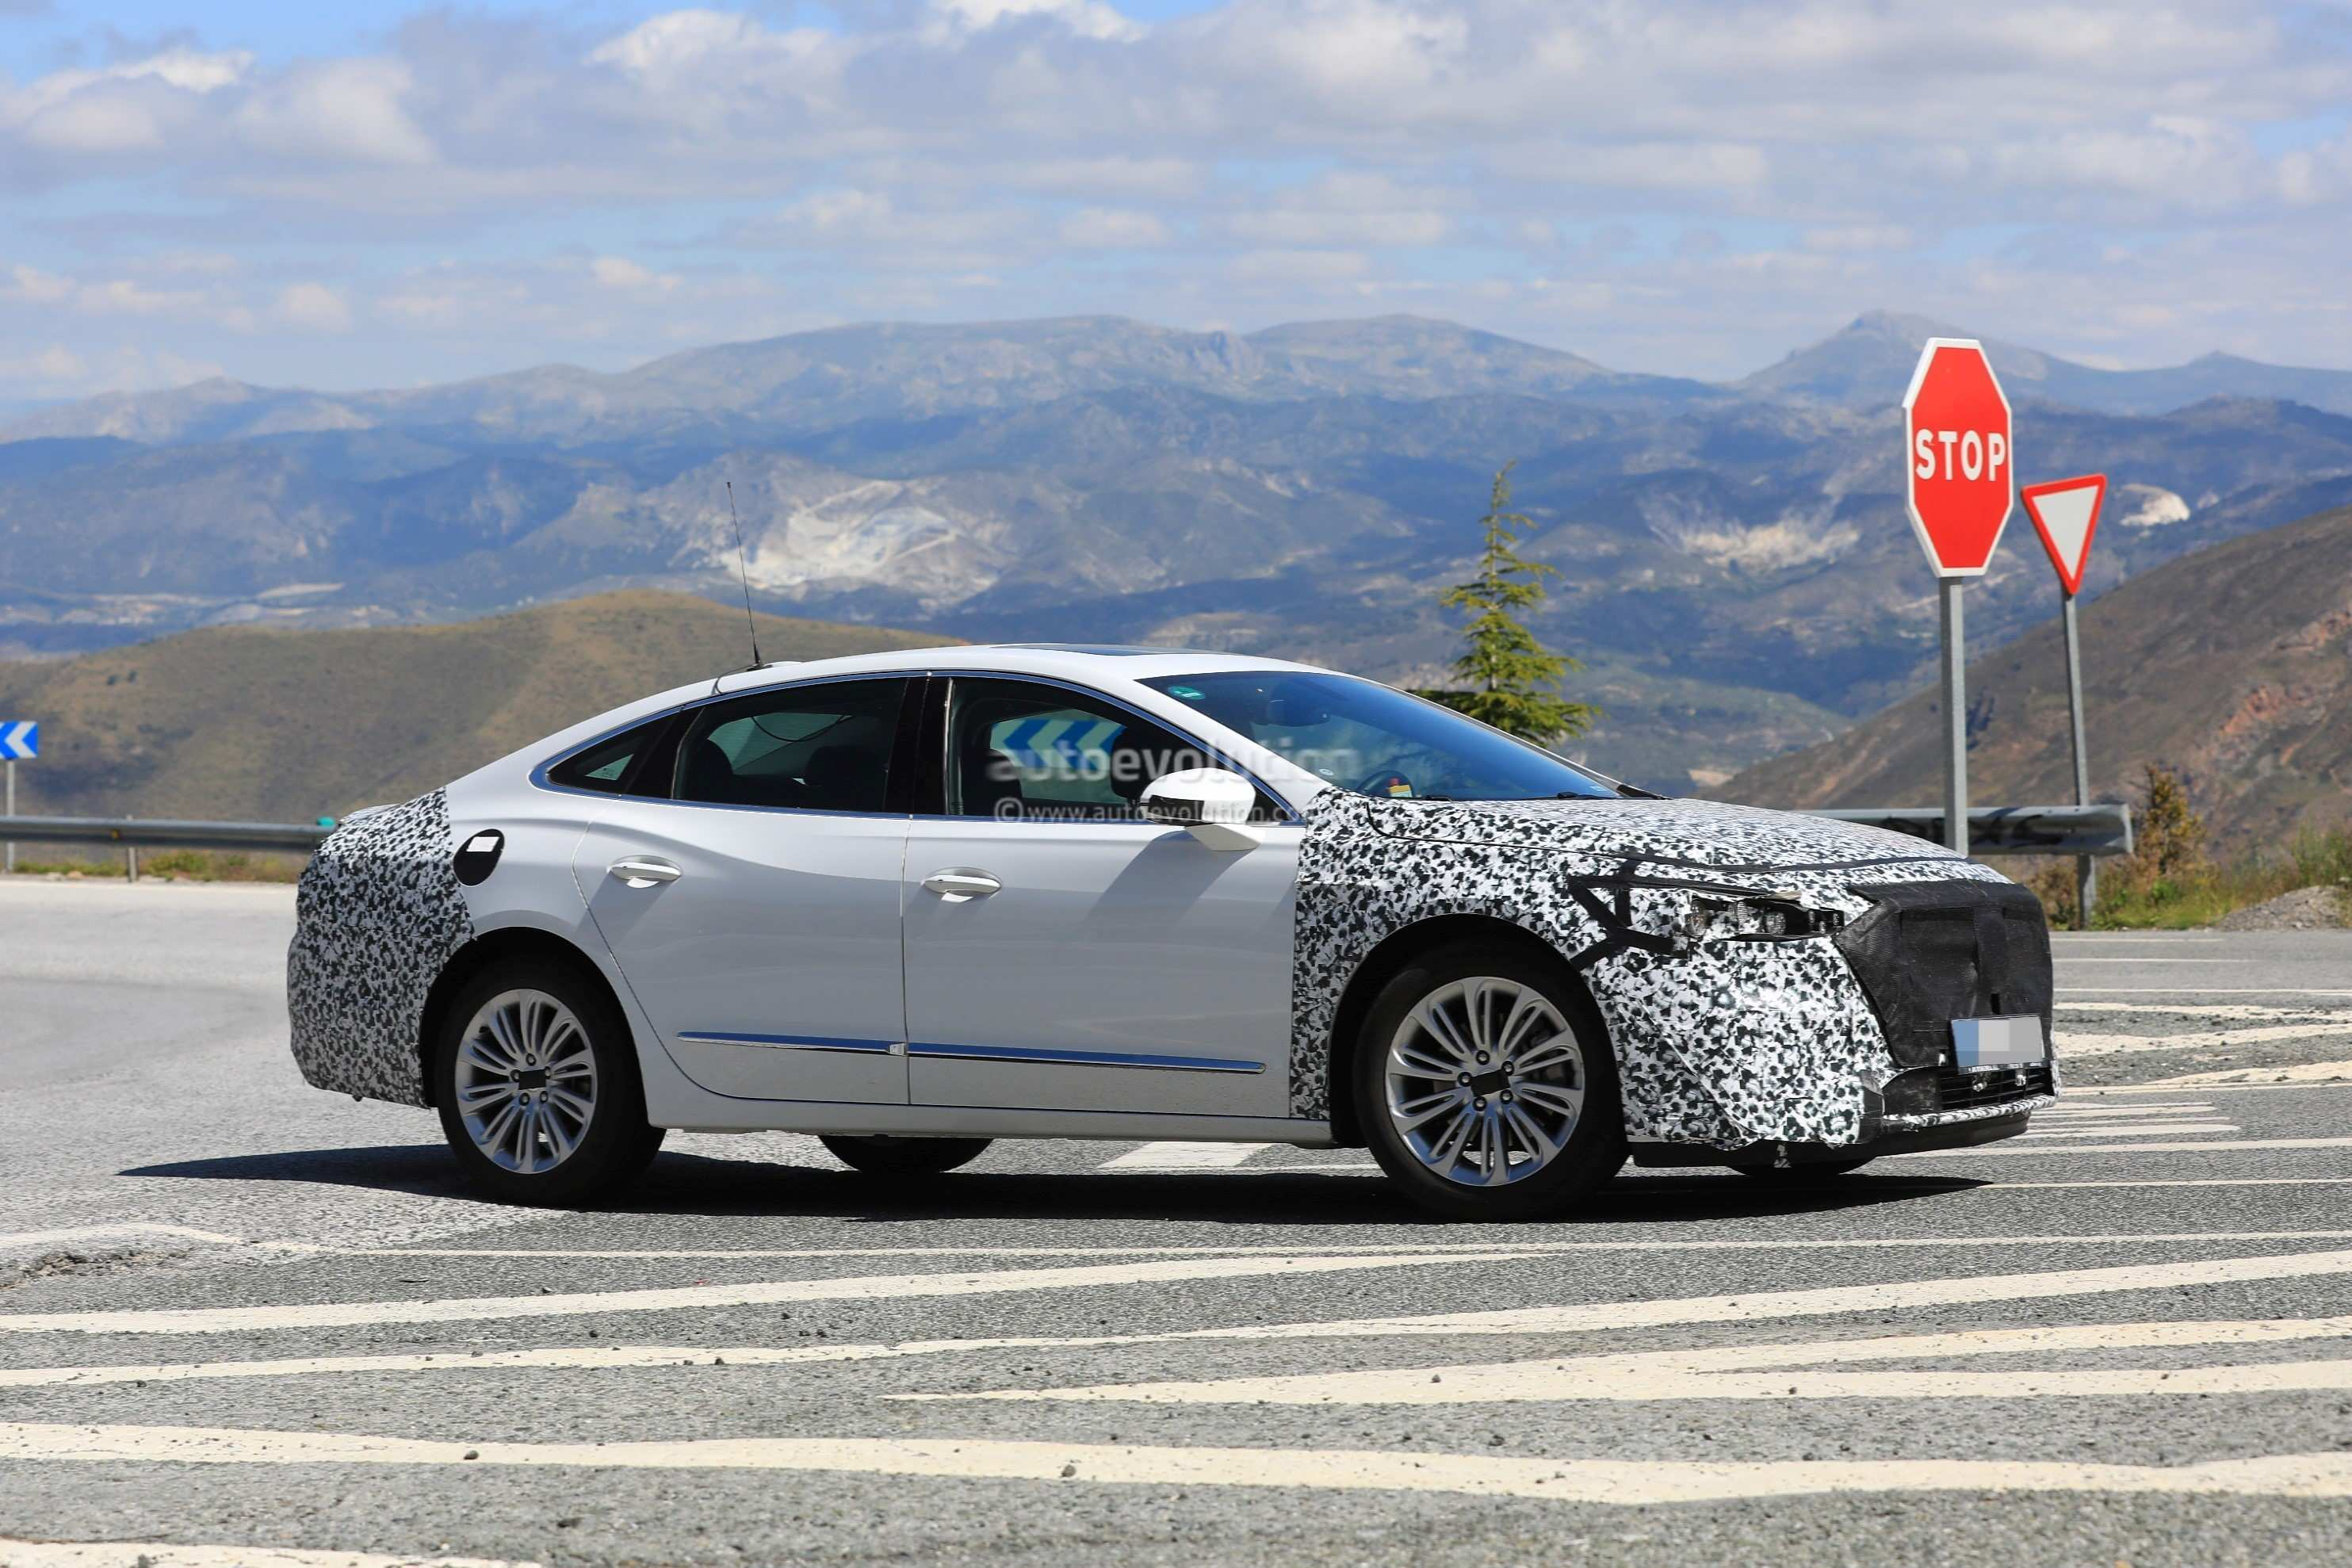 63 New 2020 Buick Lacrosse Refresh Redesign